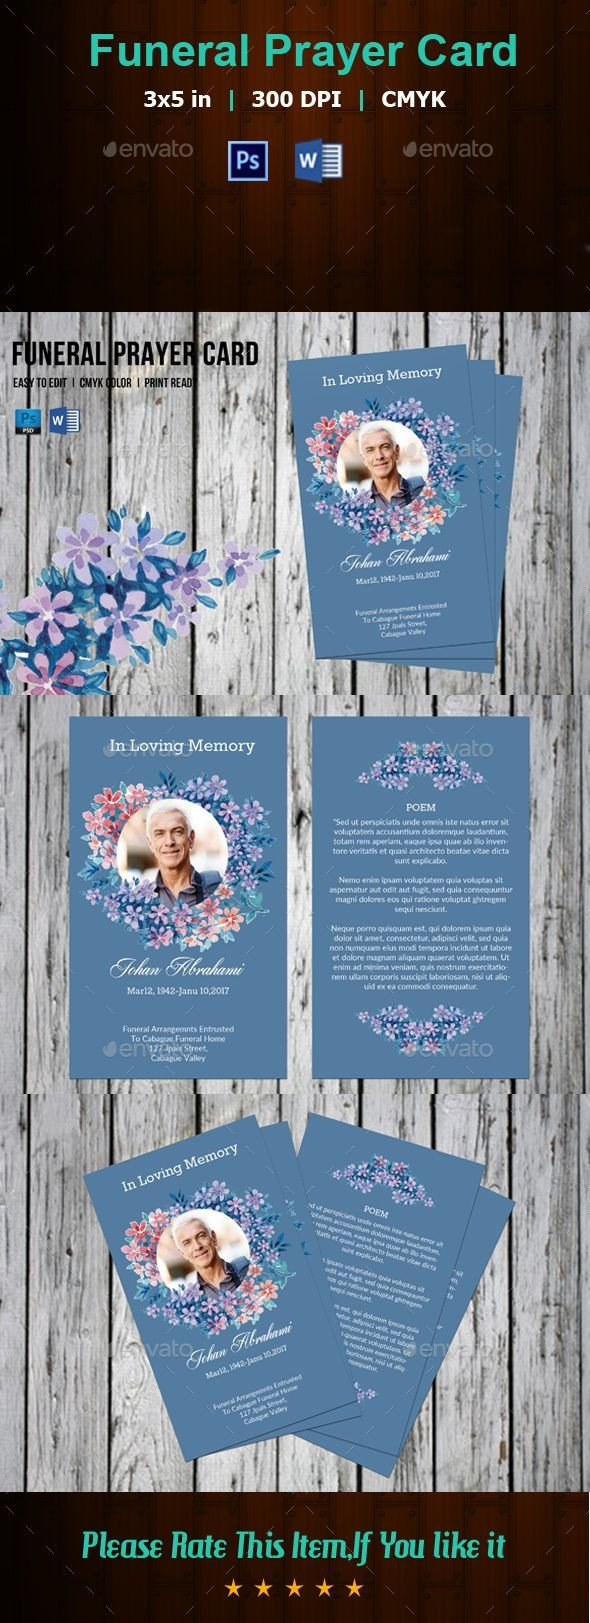 Funeral Prayer Cards Templates Best 25 Funeral Prayers Ideas On Pinterest